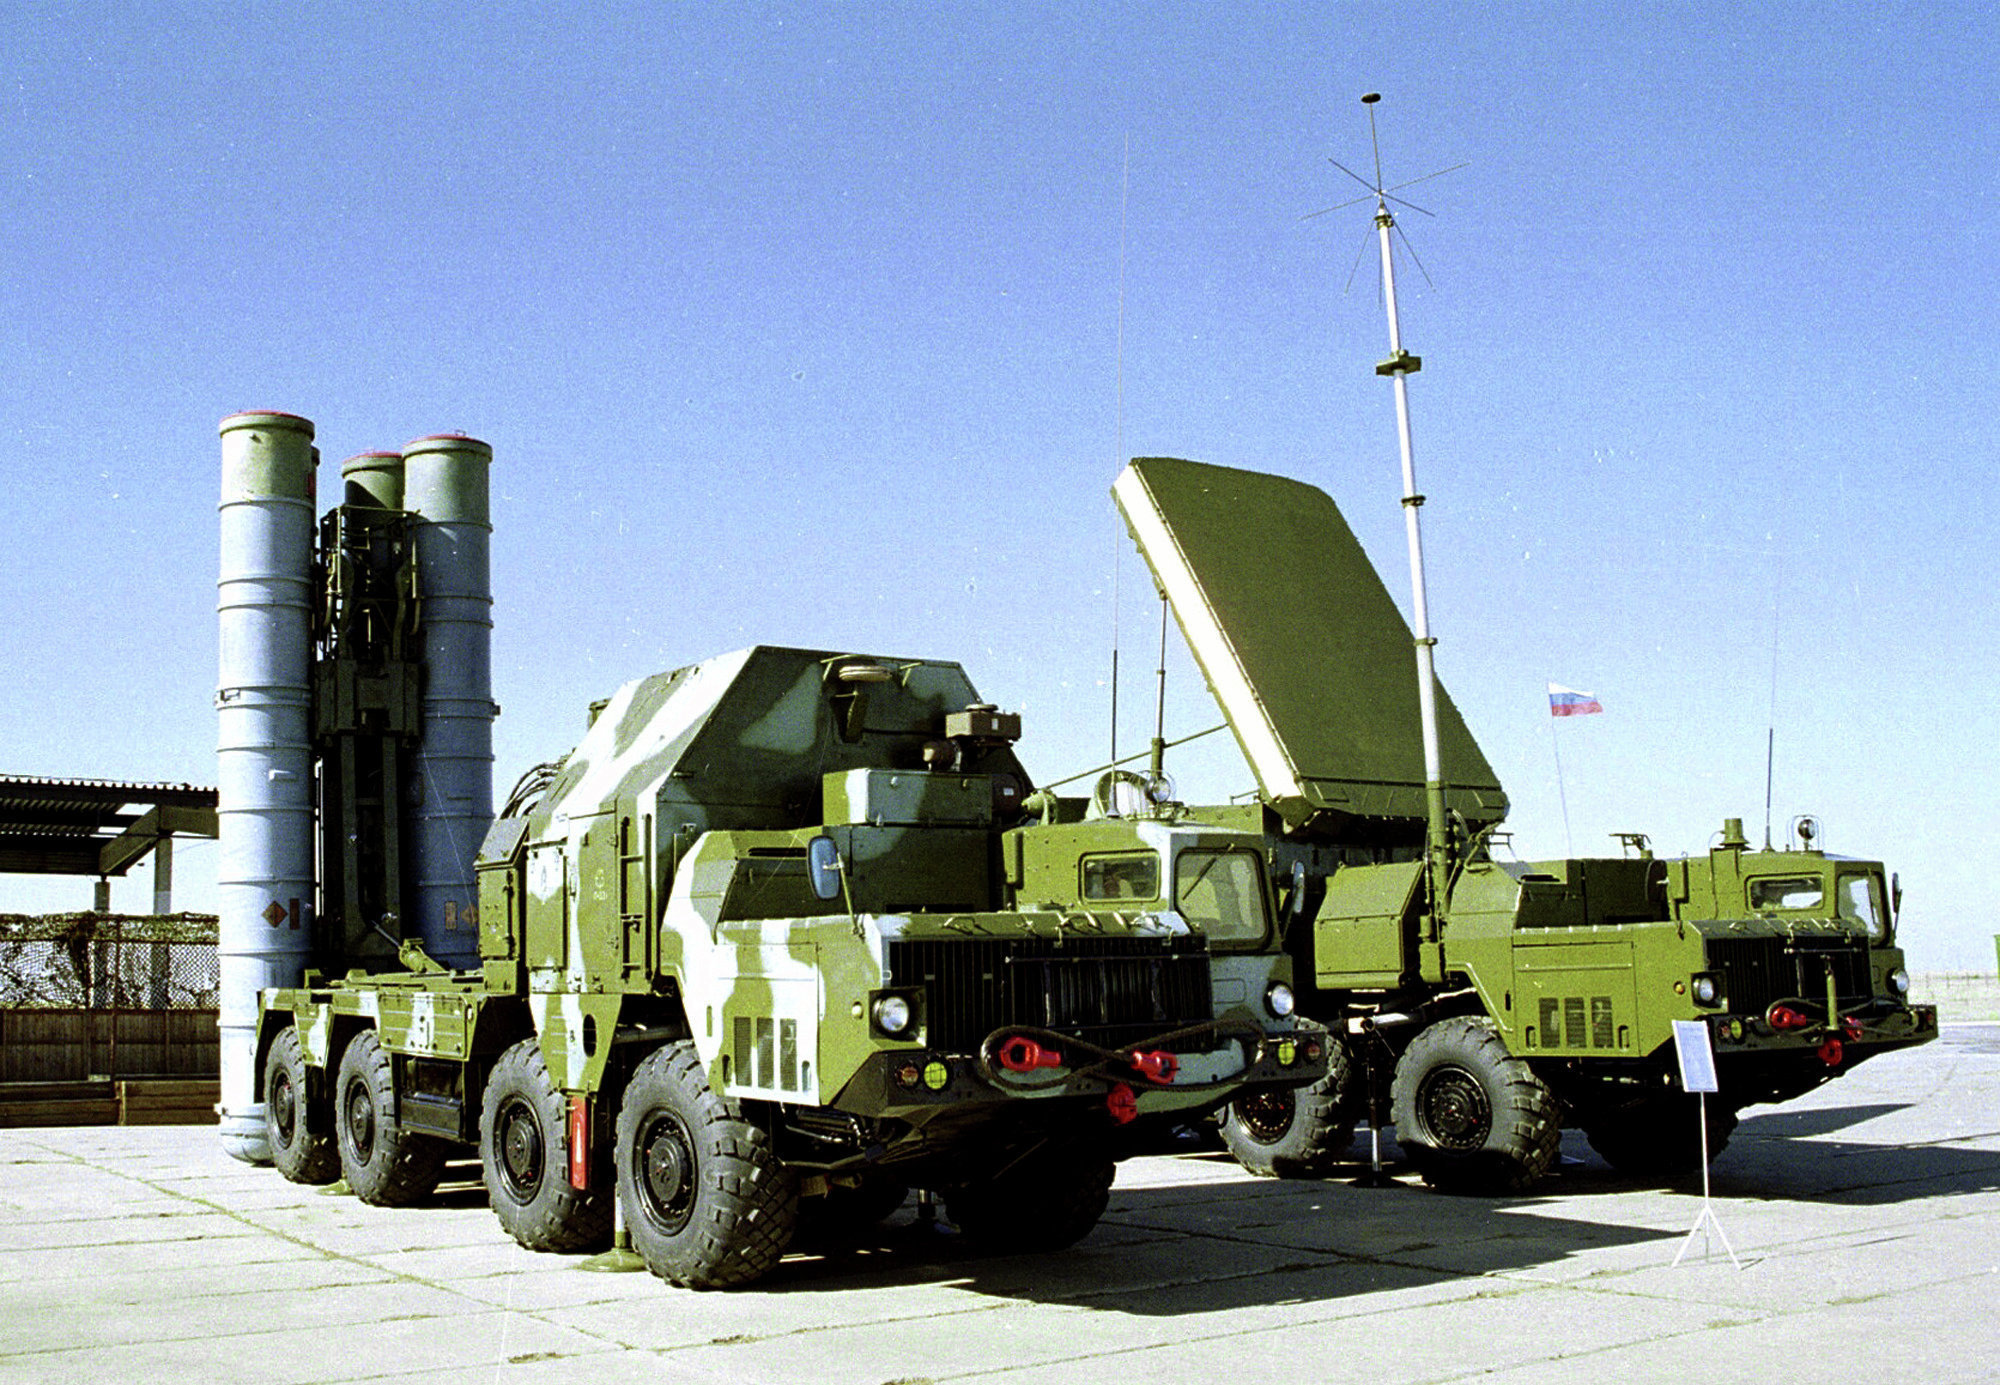 A Russian S-300 anti-aircraft missile system is on display in an undisclosed location in Russia